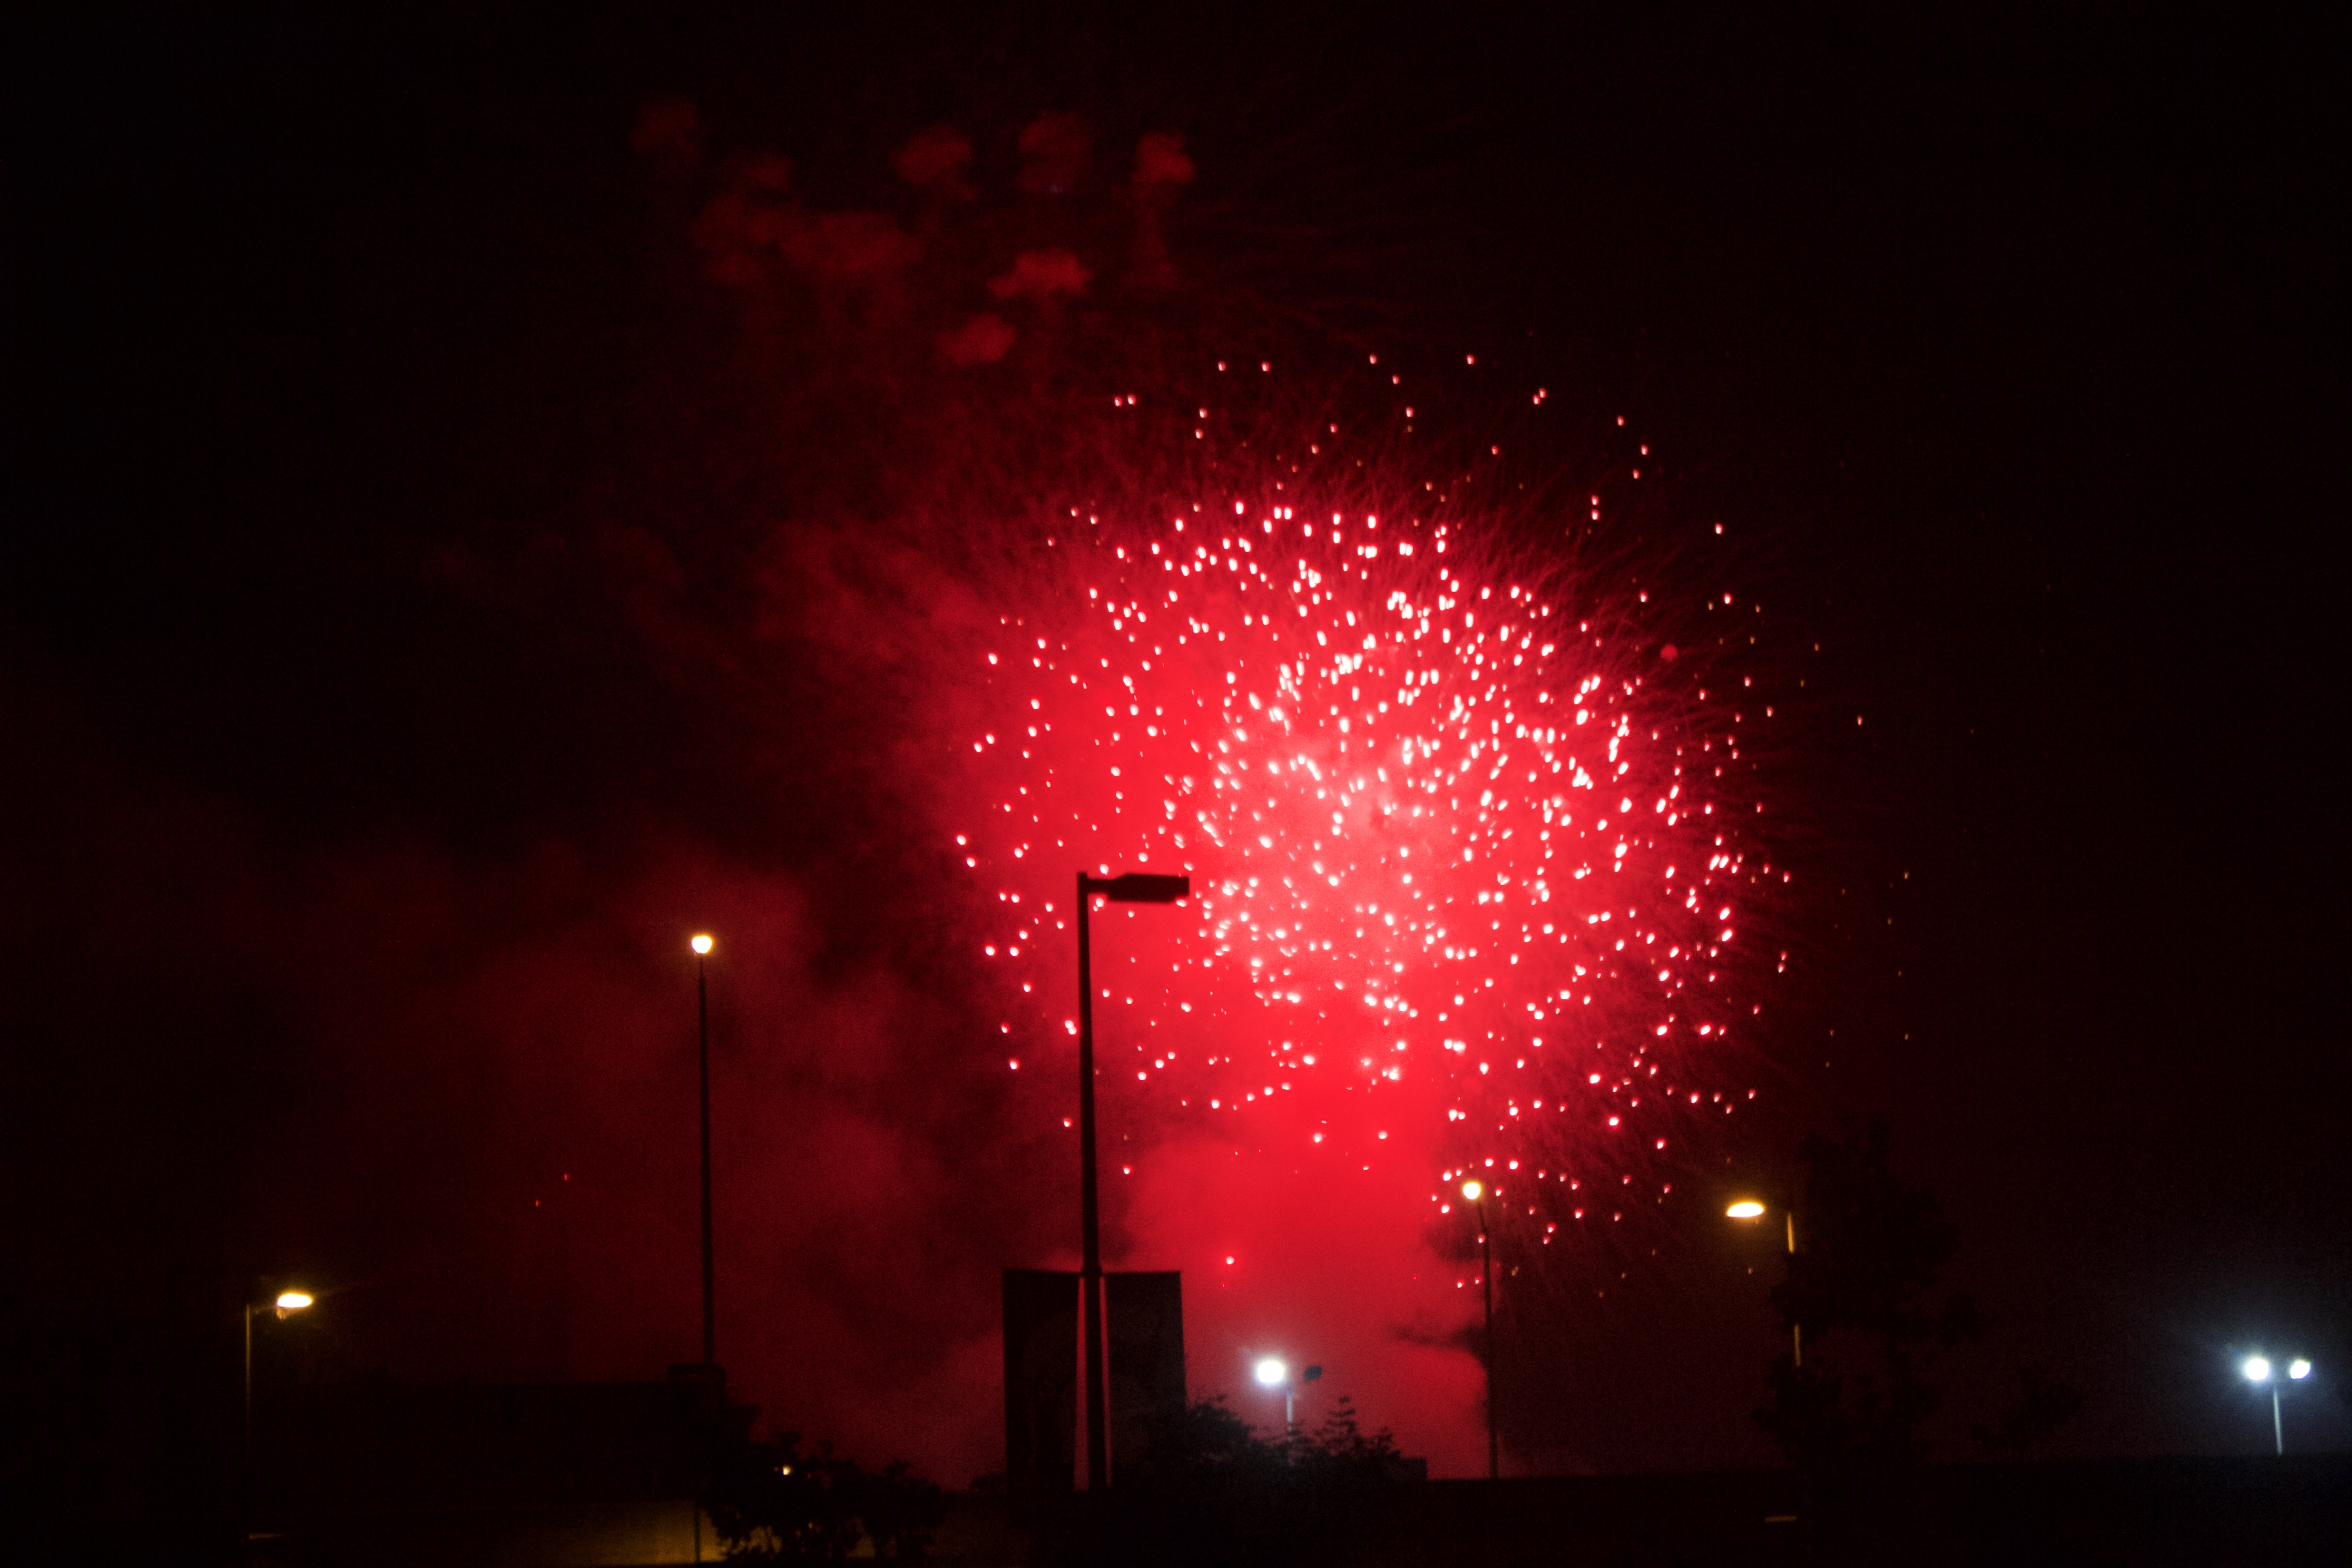 Fireworks in red